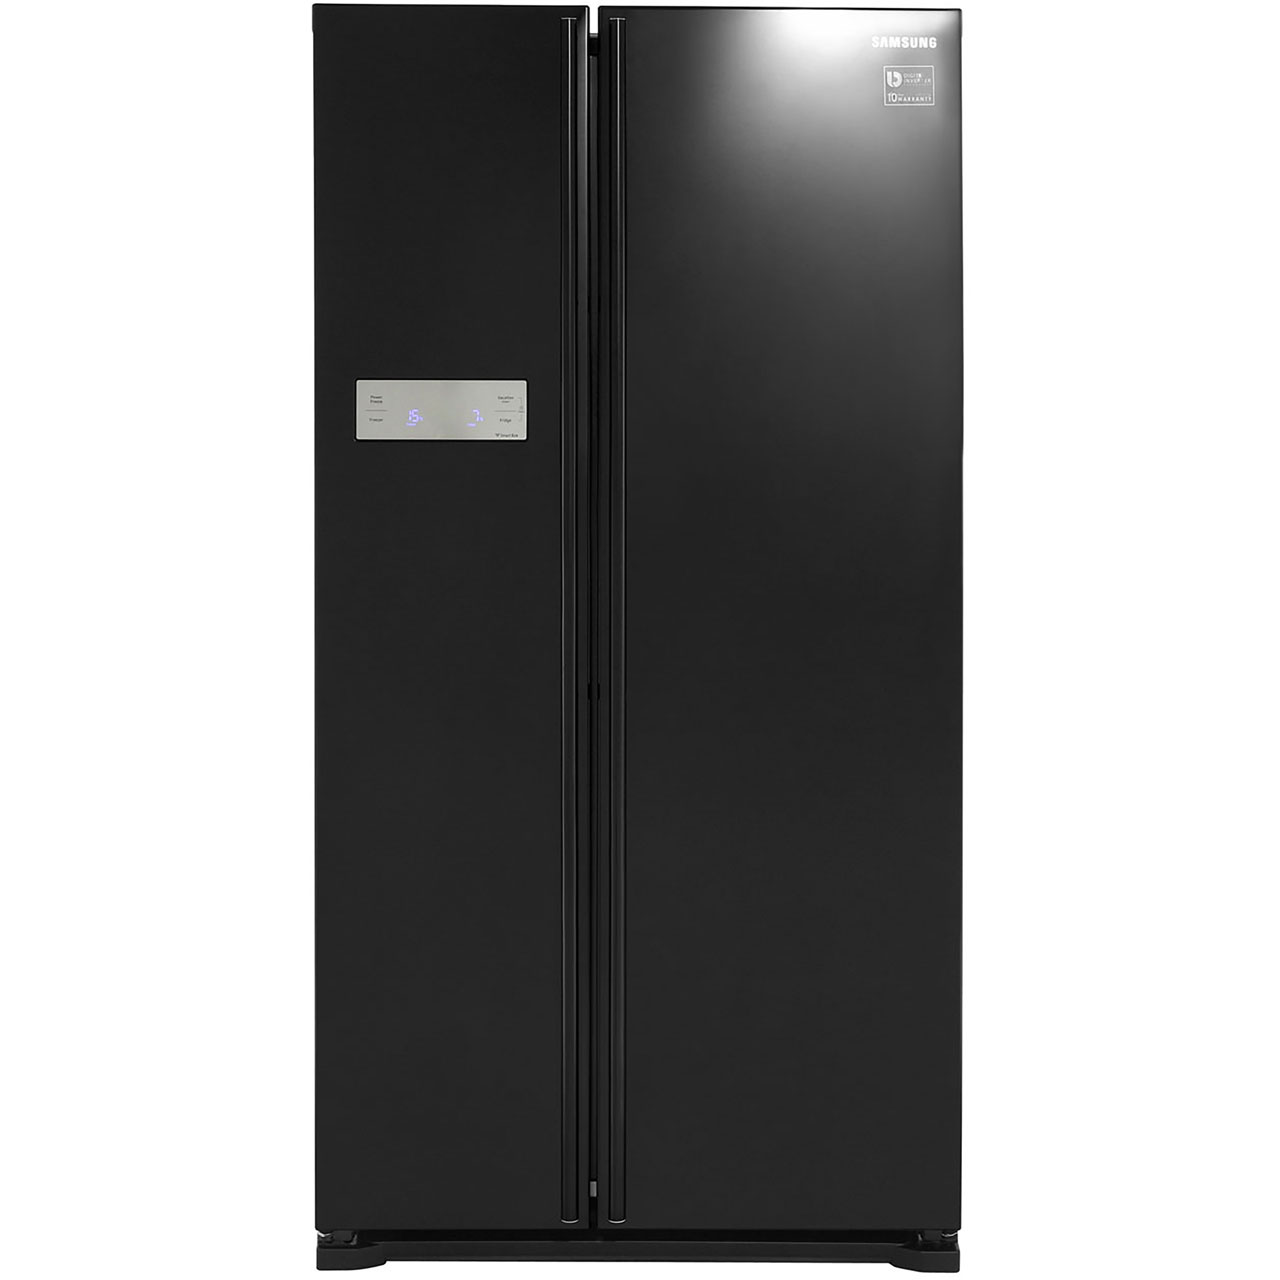 Samsung HSeries RS7527BHCBC Free Standing American Fridge Freezer in Black Gloss